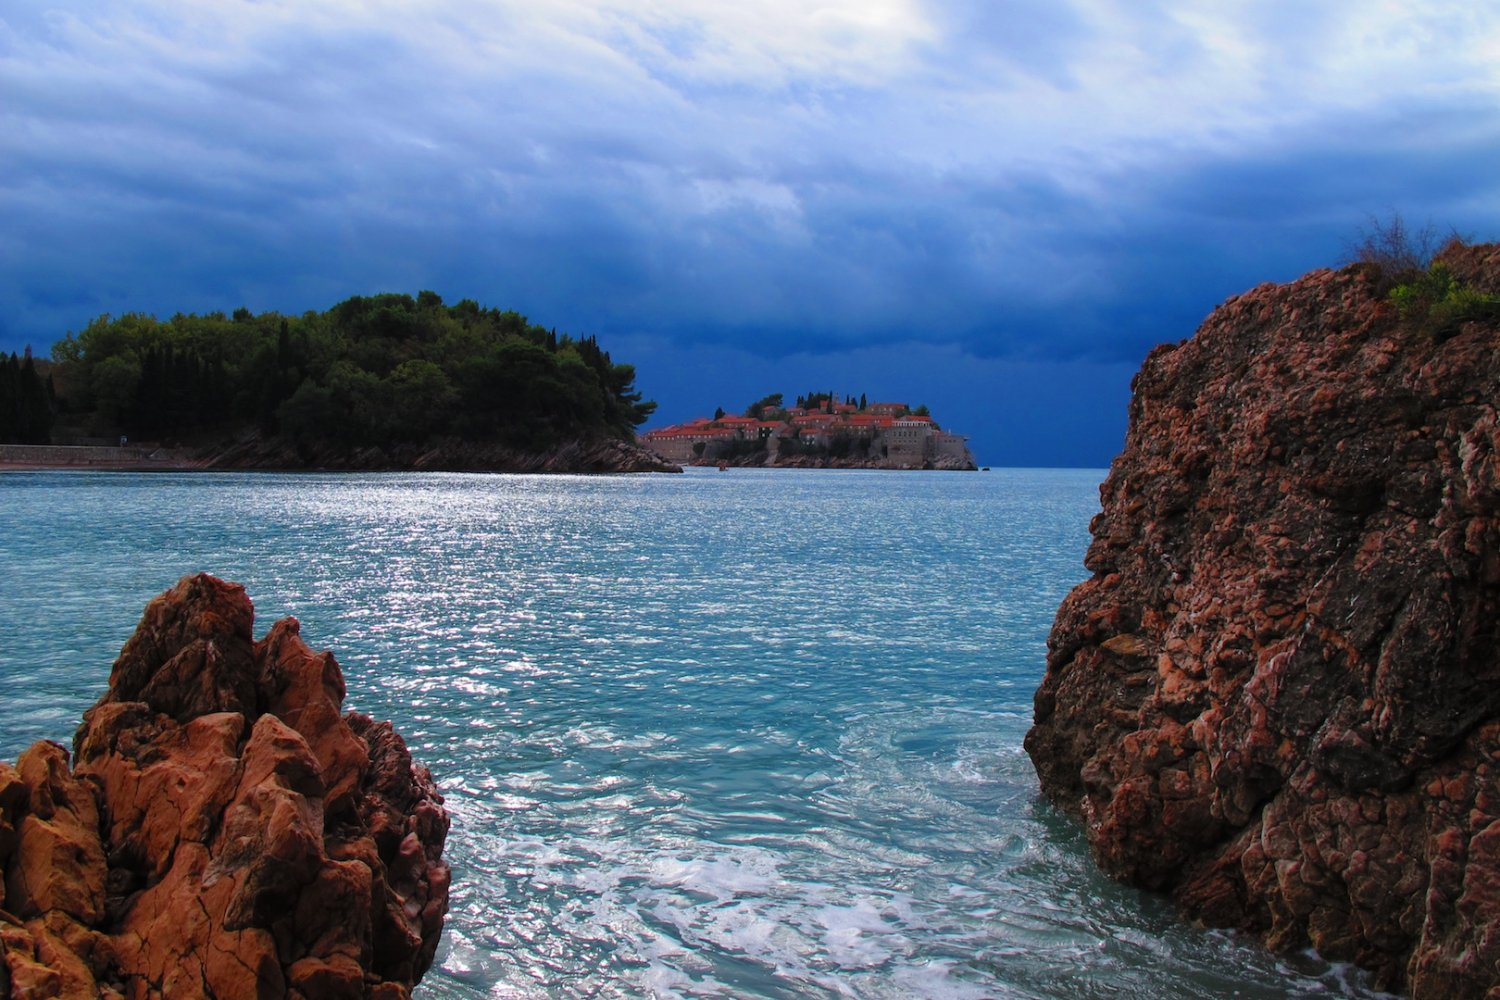 Top 10 Things To Do On a Rainy Day in Montenegro